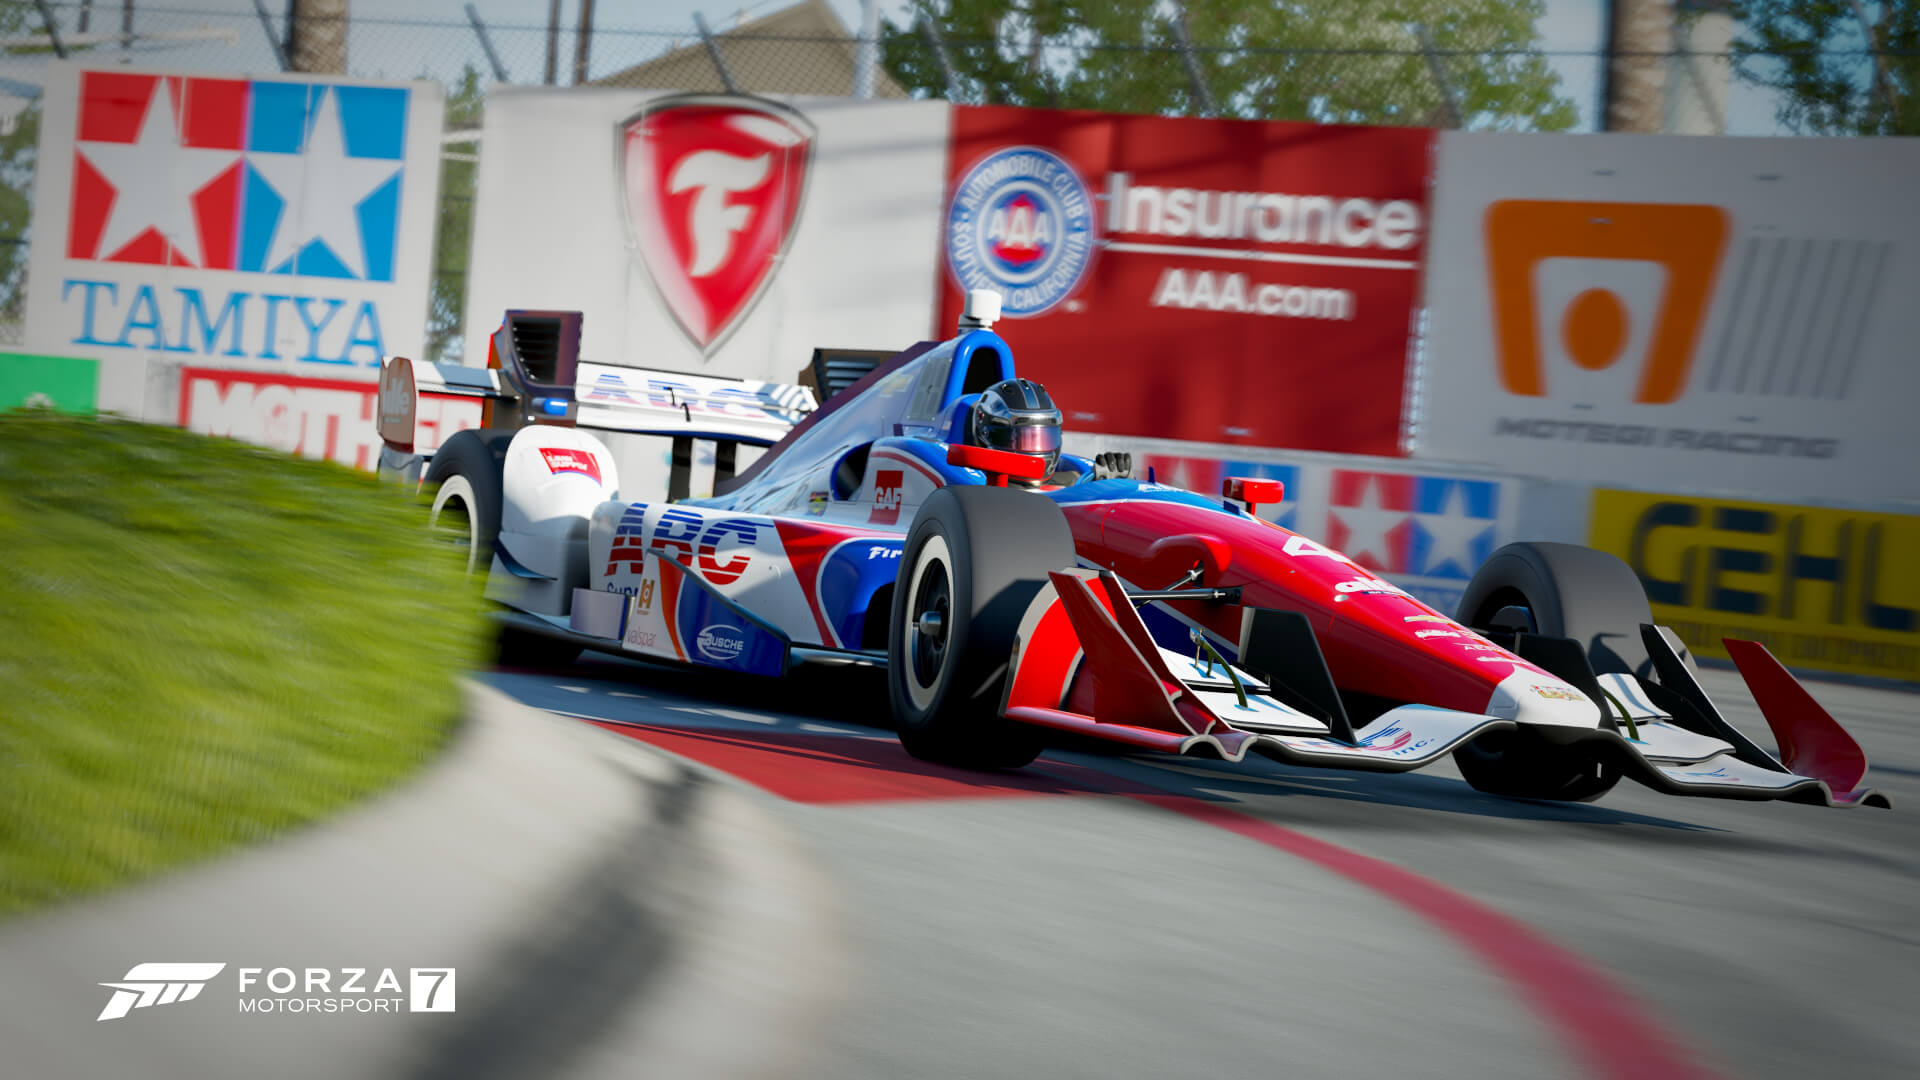 Indycar Ir 18 Spec Coming This Season To Forza Motorsport 7